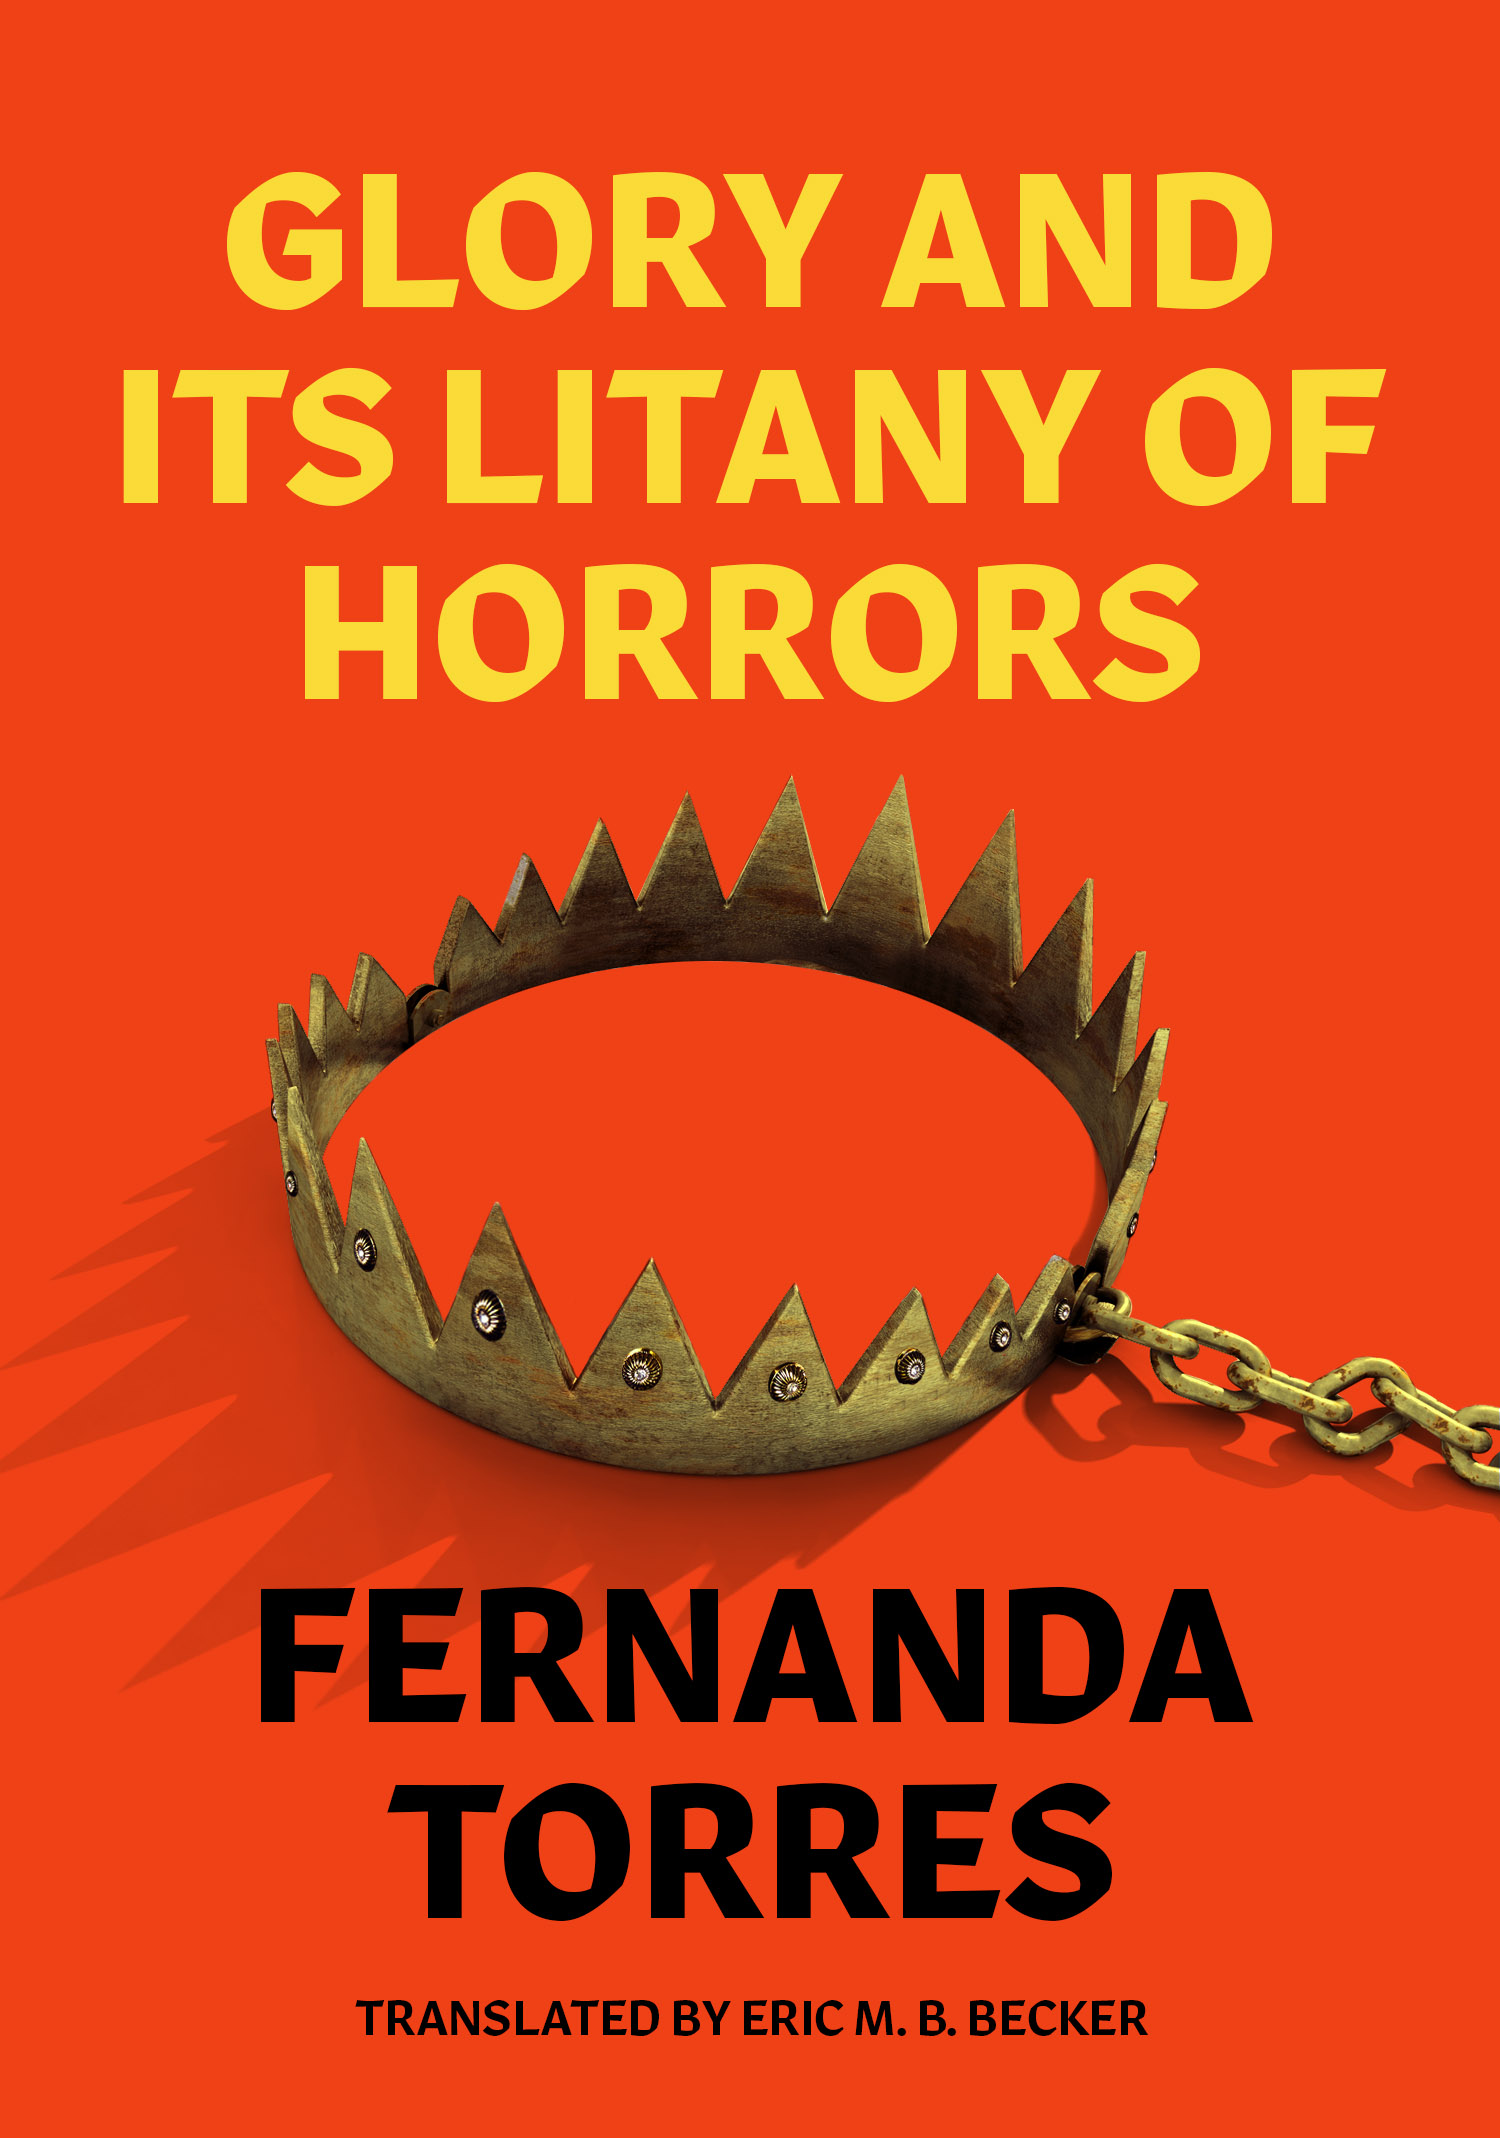 Glory and its Litany of Horrors, by Fernanda Torres - 9781632061126.jpg